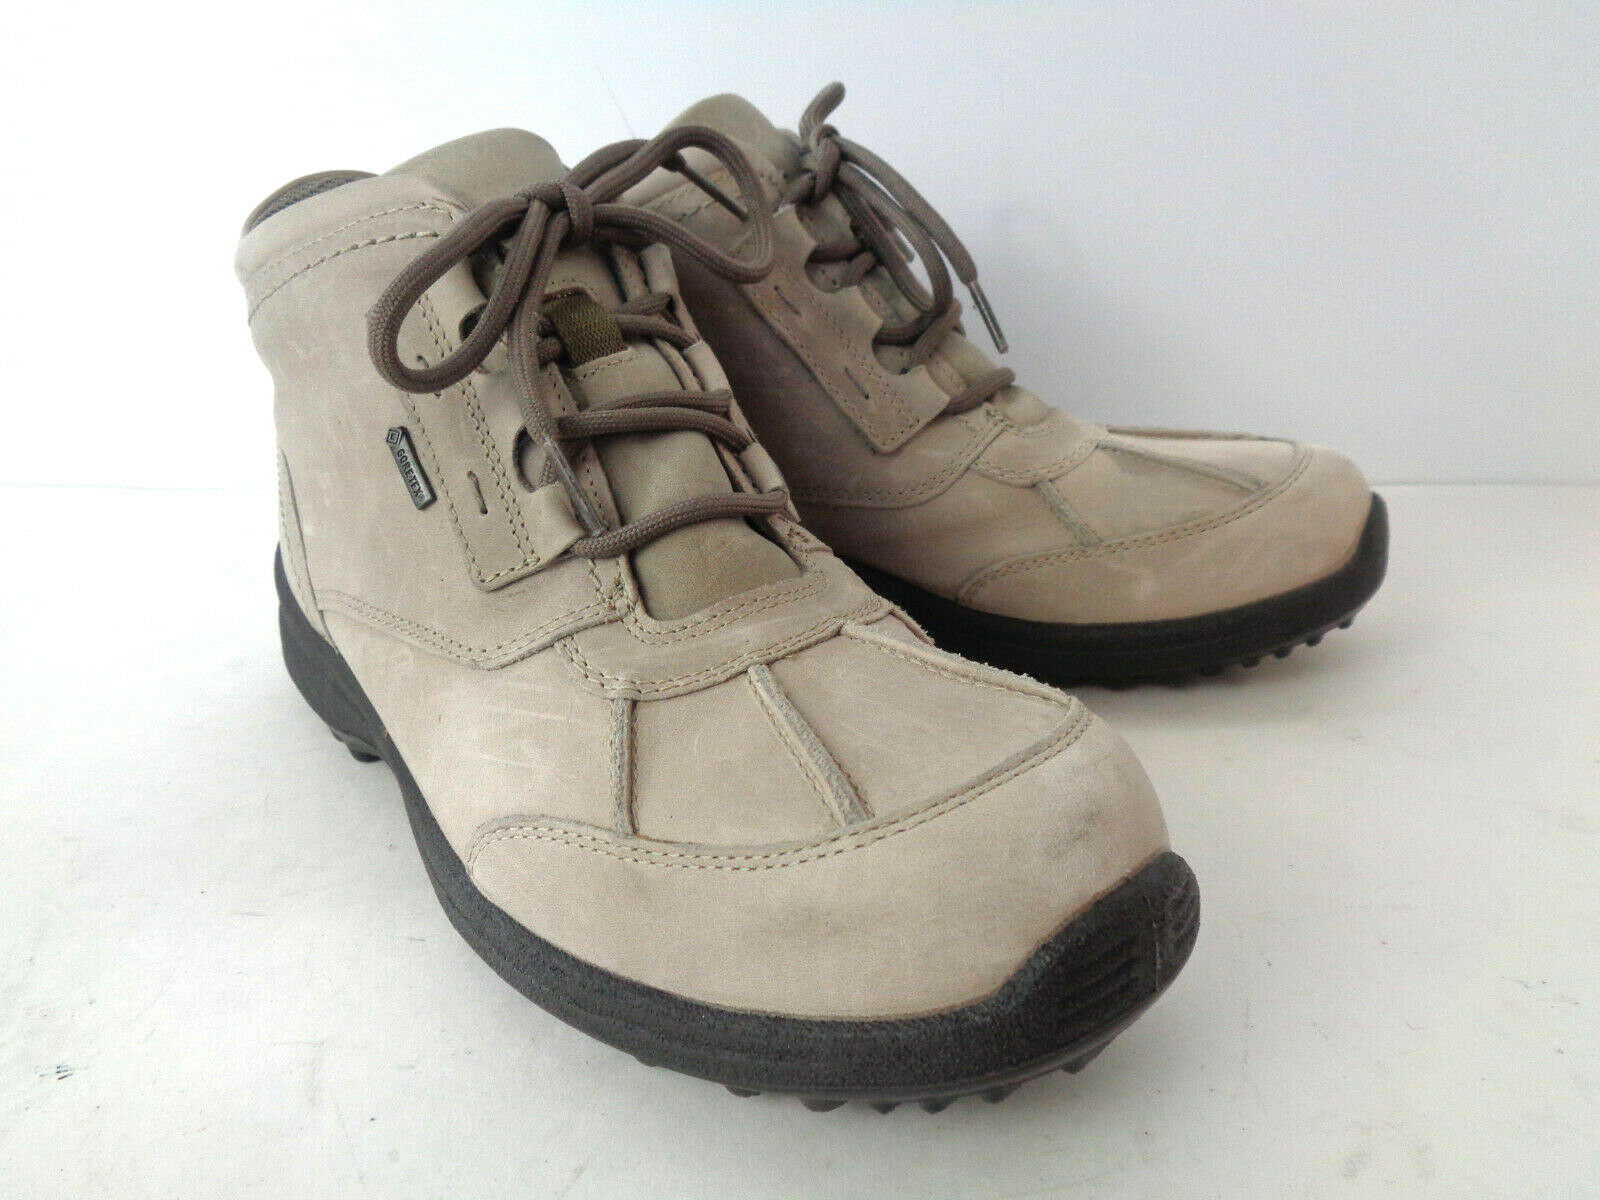 HOTTER Far Boots US 8.5 9M Light Grey leather with Gore Tex Lining Lace Up